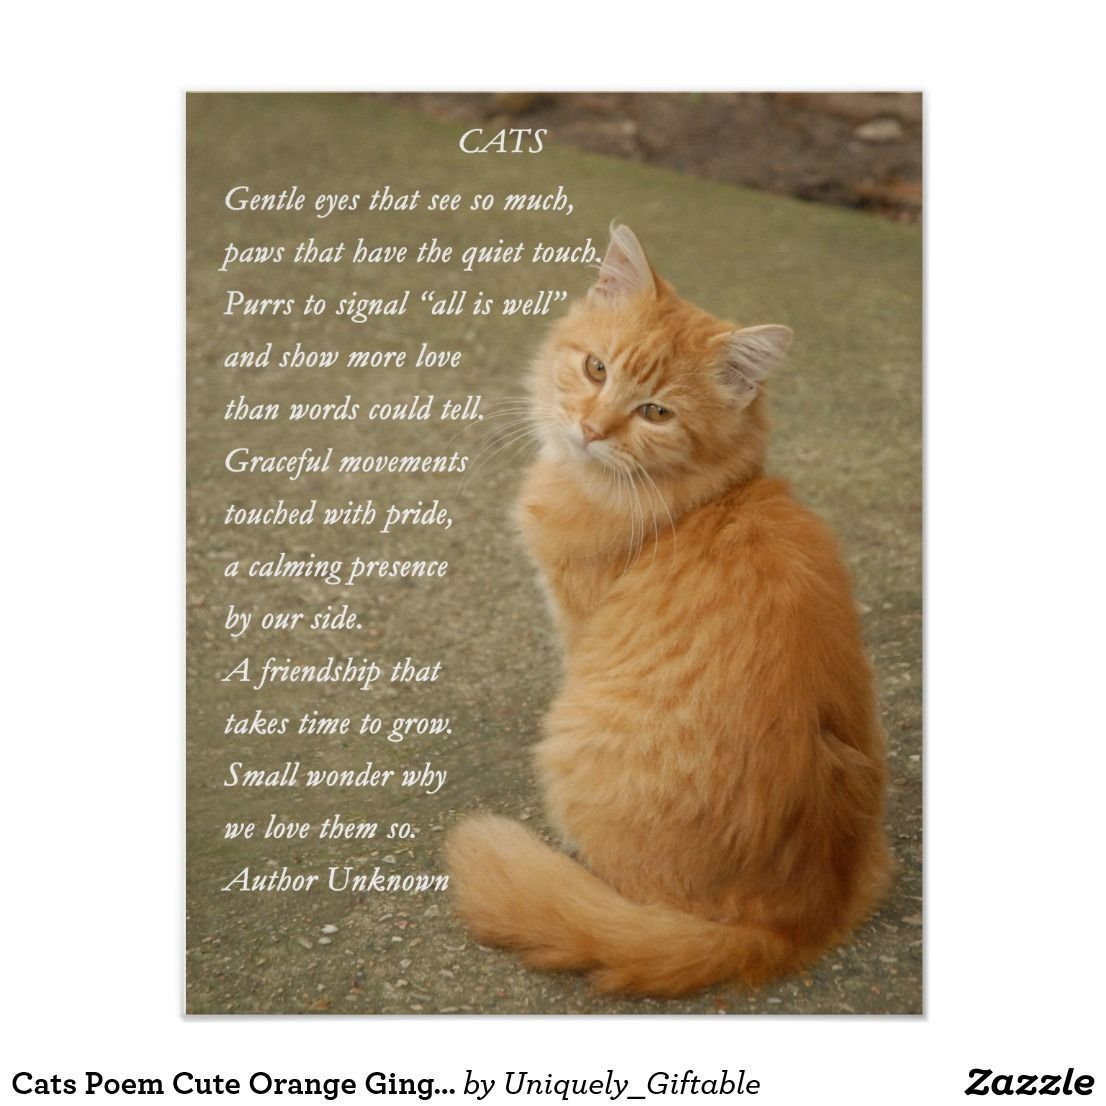 Cats Poem Cute Orange Ginger Kitty Cat Poster Orange Kittens Cat Poems Cats